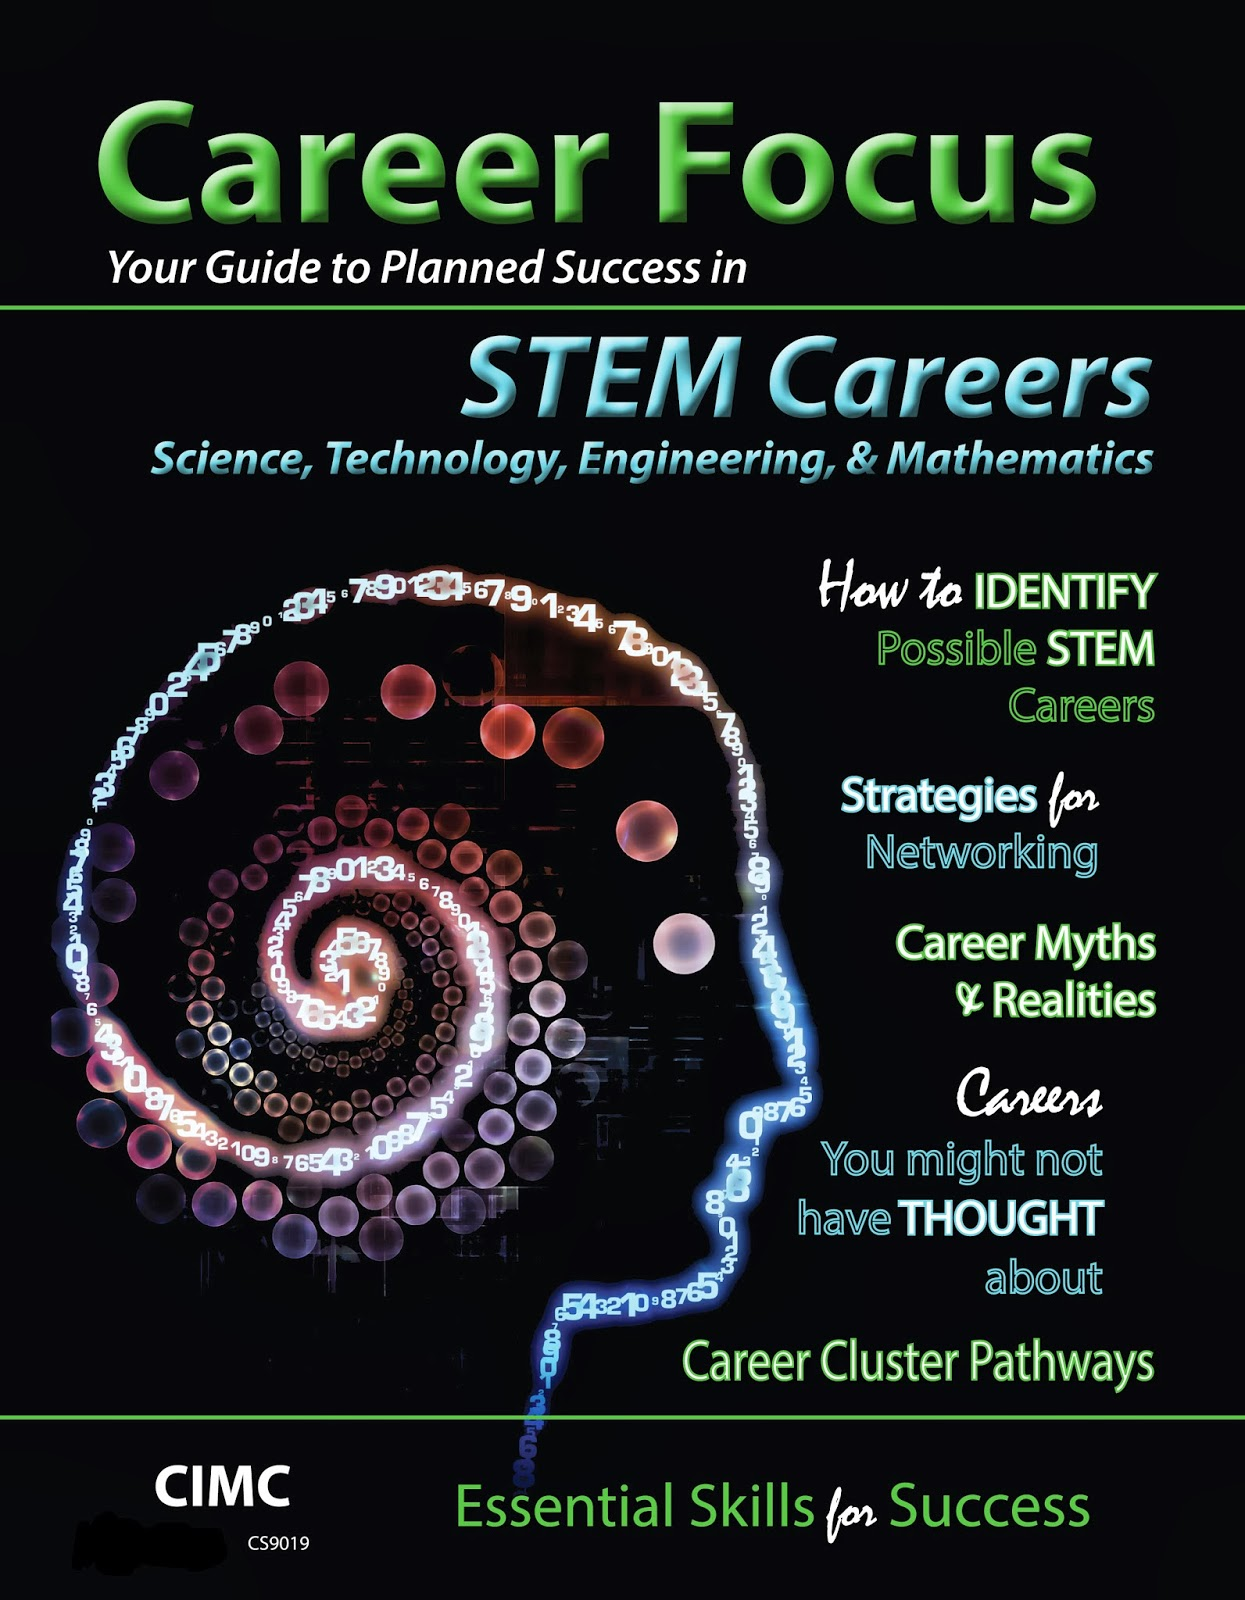 careertech testing center new from cimc career focus stem careers career focus stem careers edition is a new career exploration and preparation guide created by cimc this full color magazine combines essential career